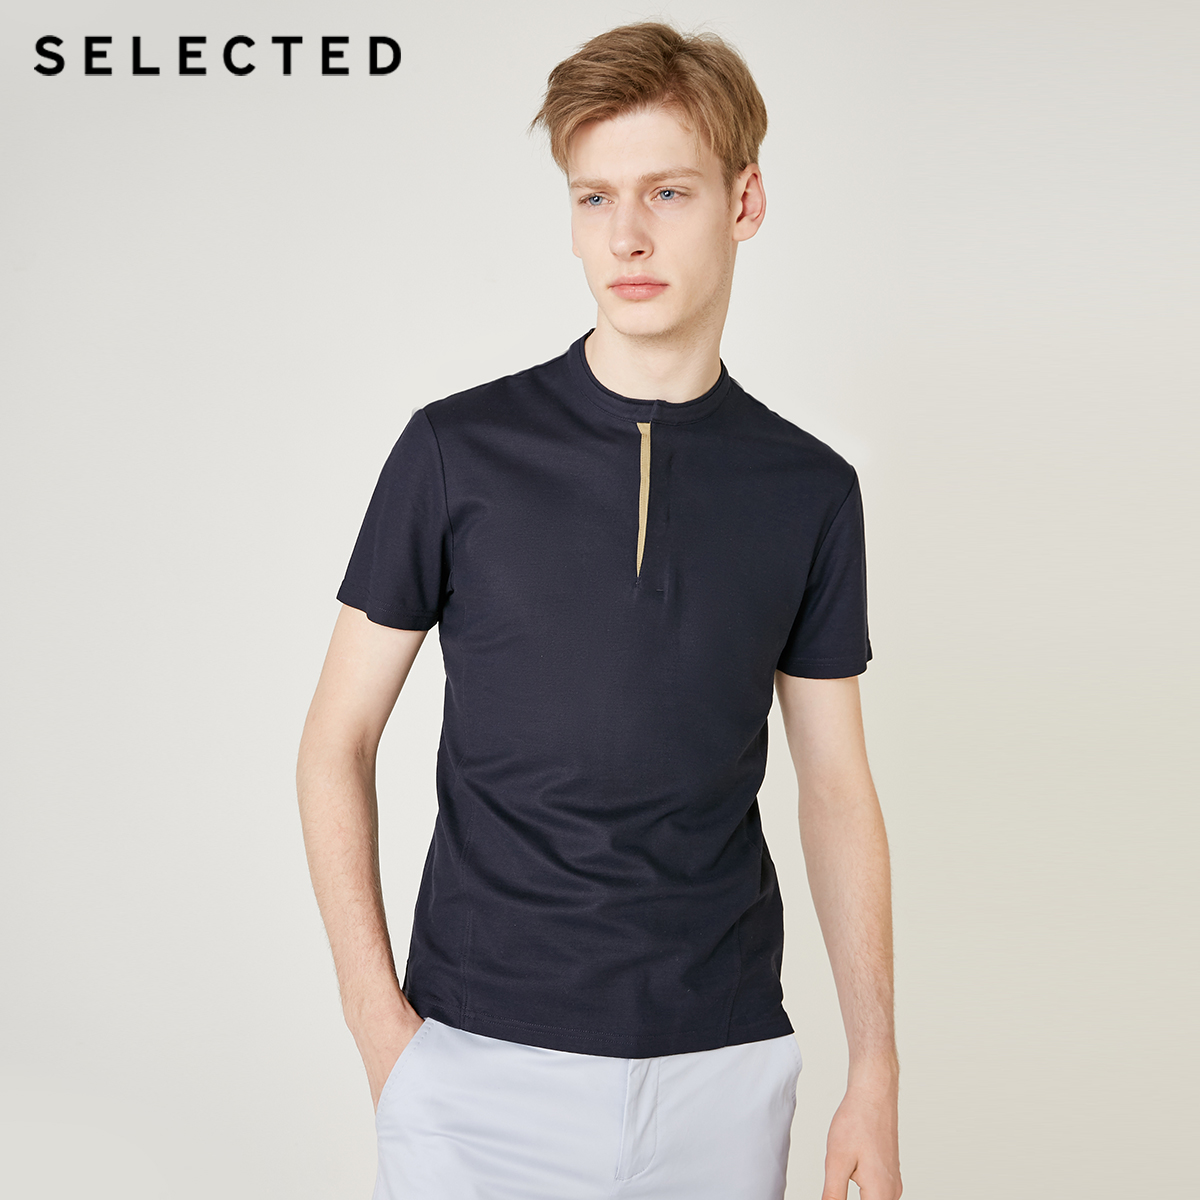 SELECTED Men's Slim Fit Stand-up Collar Short-sleeved Poloshirt  S 419206532